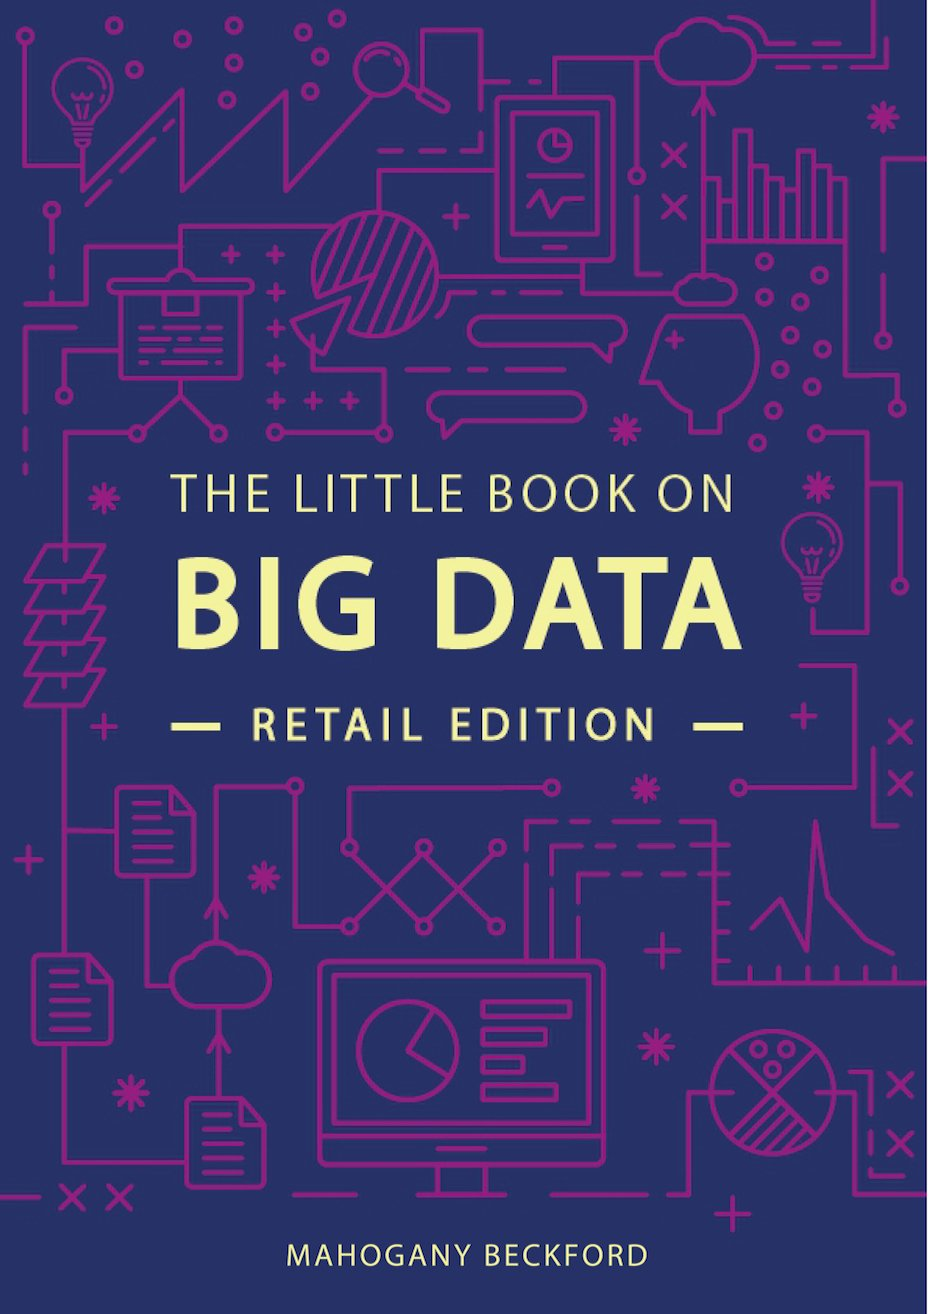 The Little Book on Big Data: Understand Retail Analytics Through Use Cases and Optimize Your Business